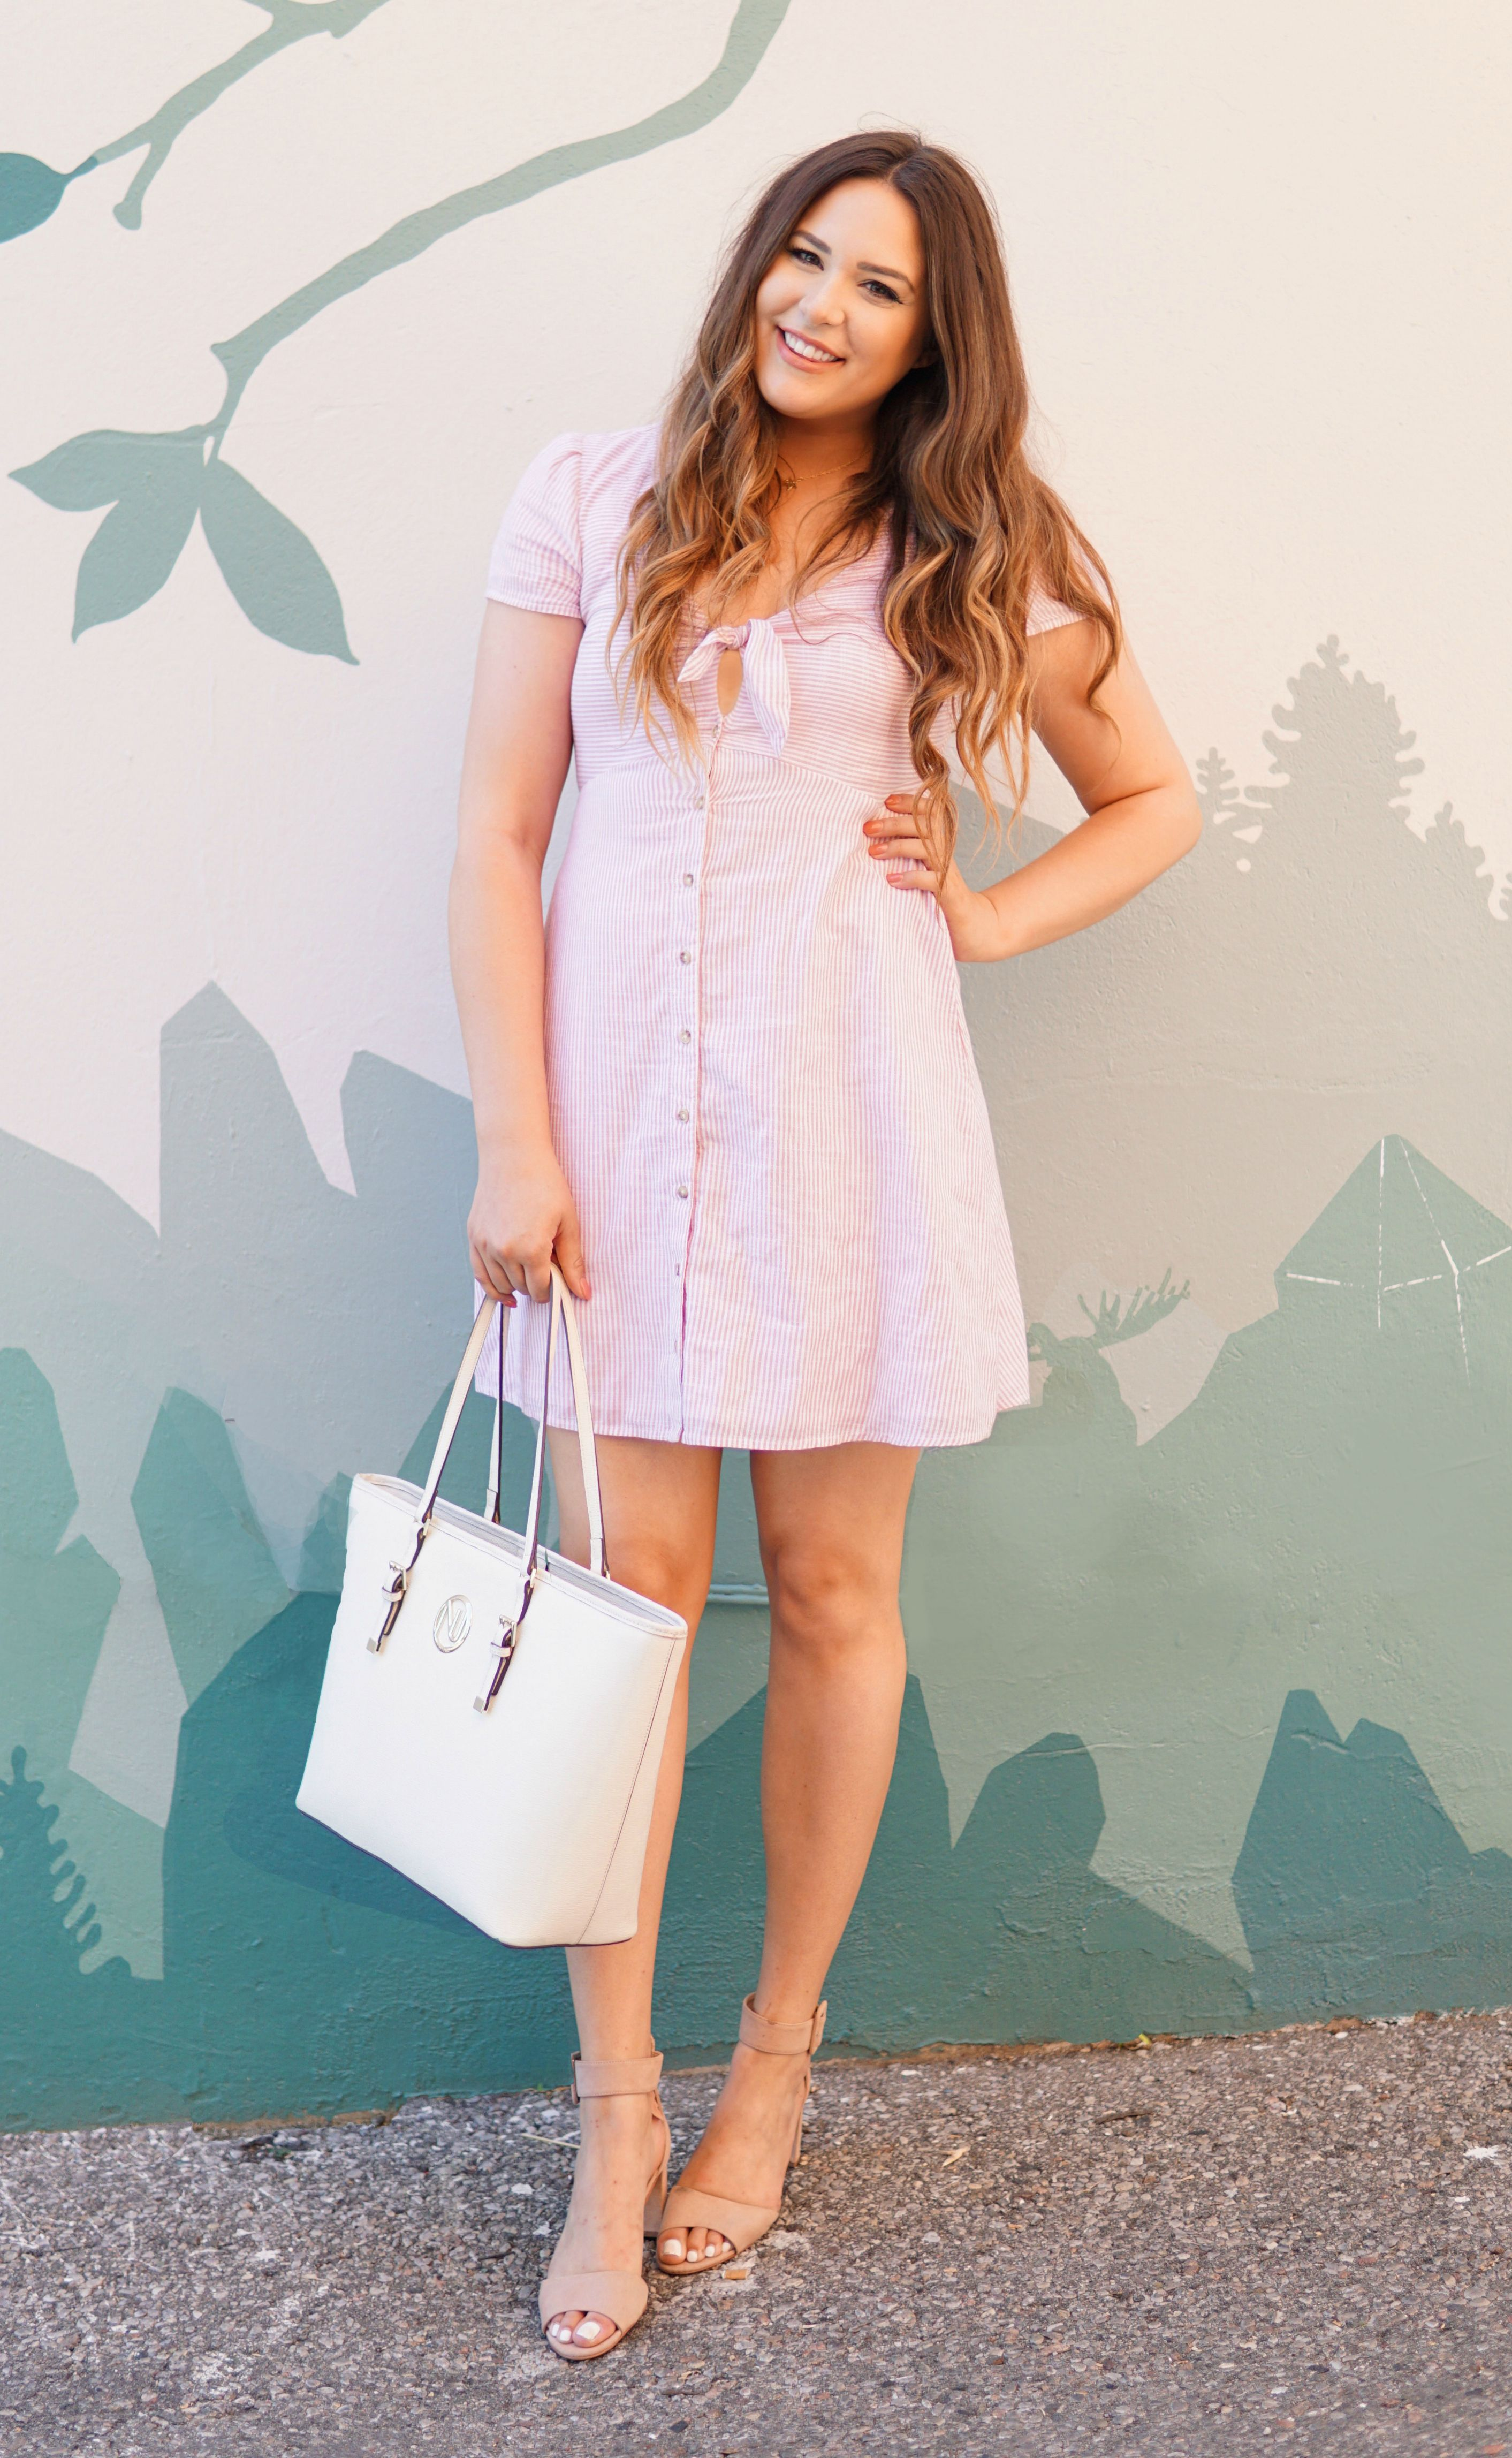 1d1f457b4ff1 So many cute dresses   Fashion, beauty and lifestyle blogger Michelle Kehoe  of Mash Elle shares 10 modest dresses you can wear to church, school, ...